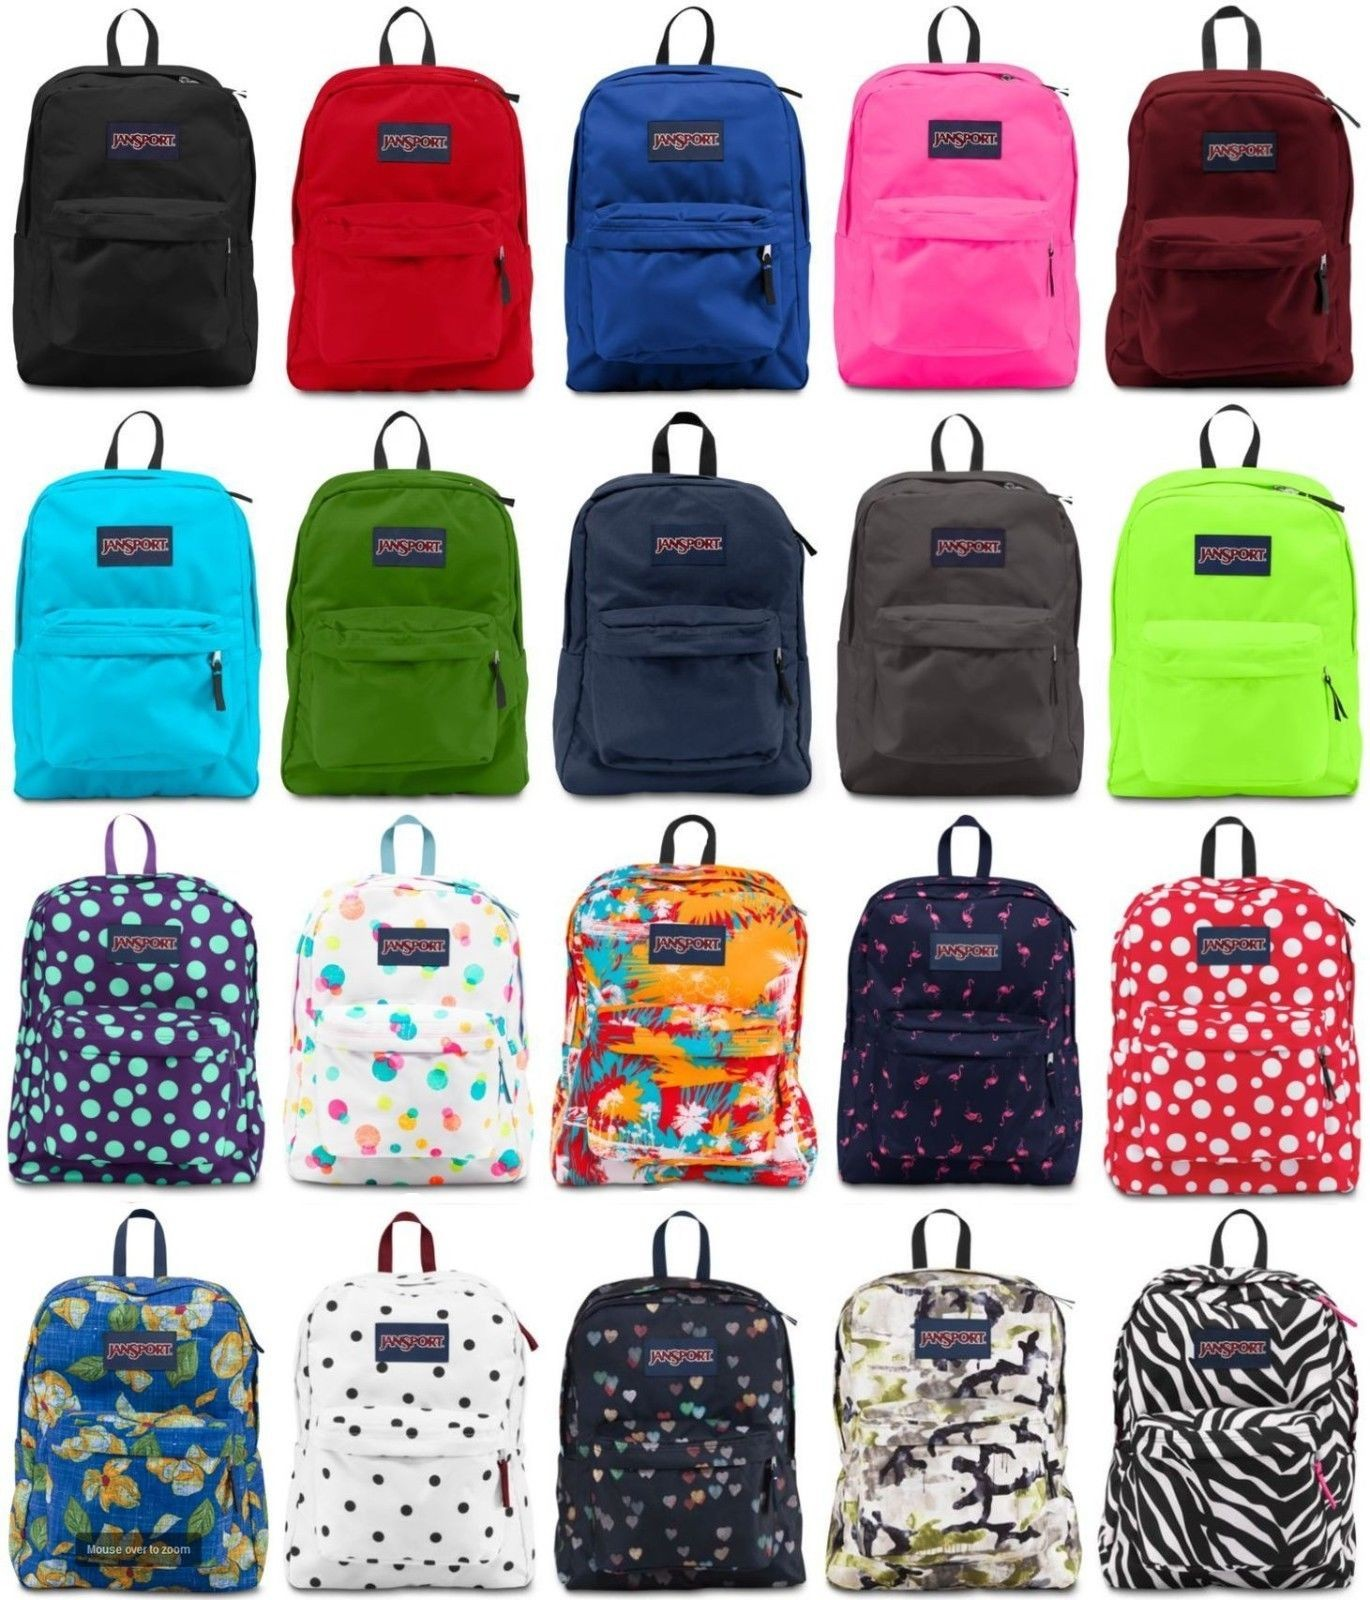 Jansport Backpacks Colors ifZB96zc